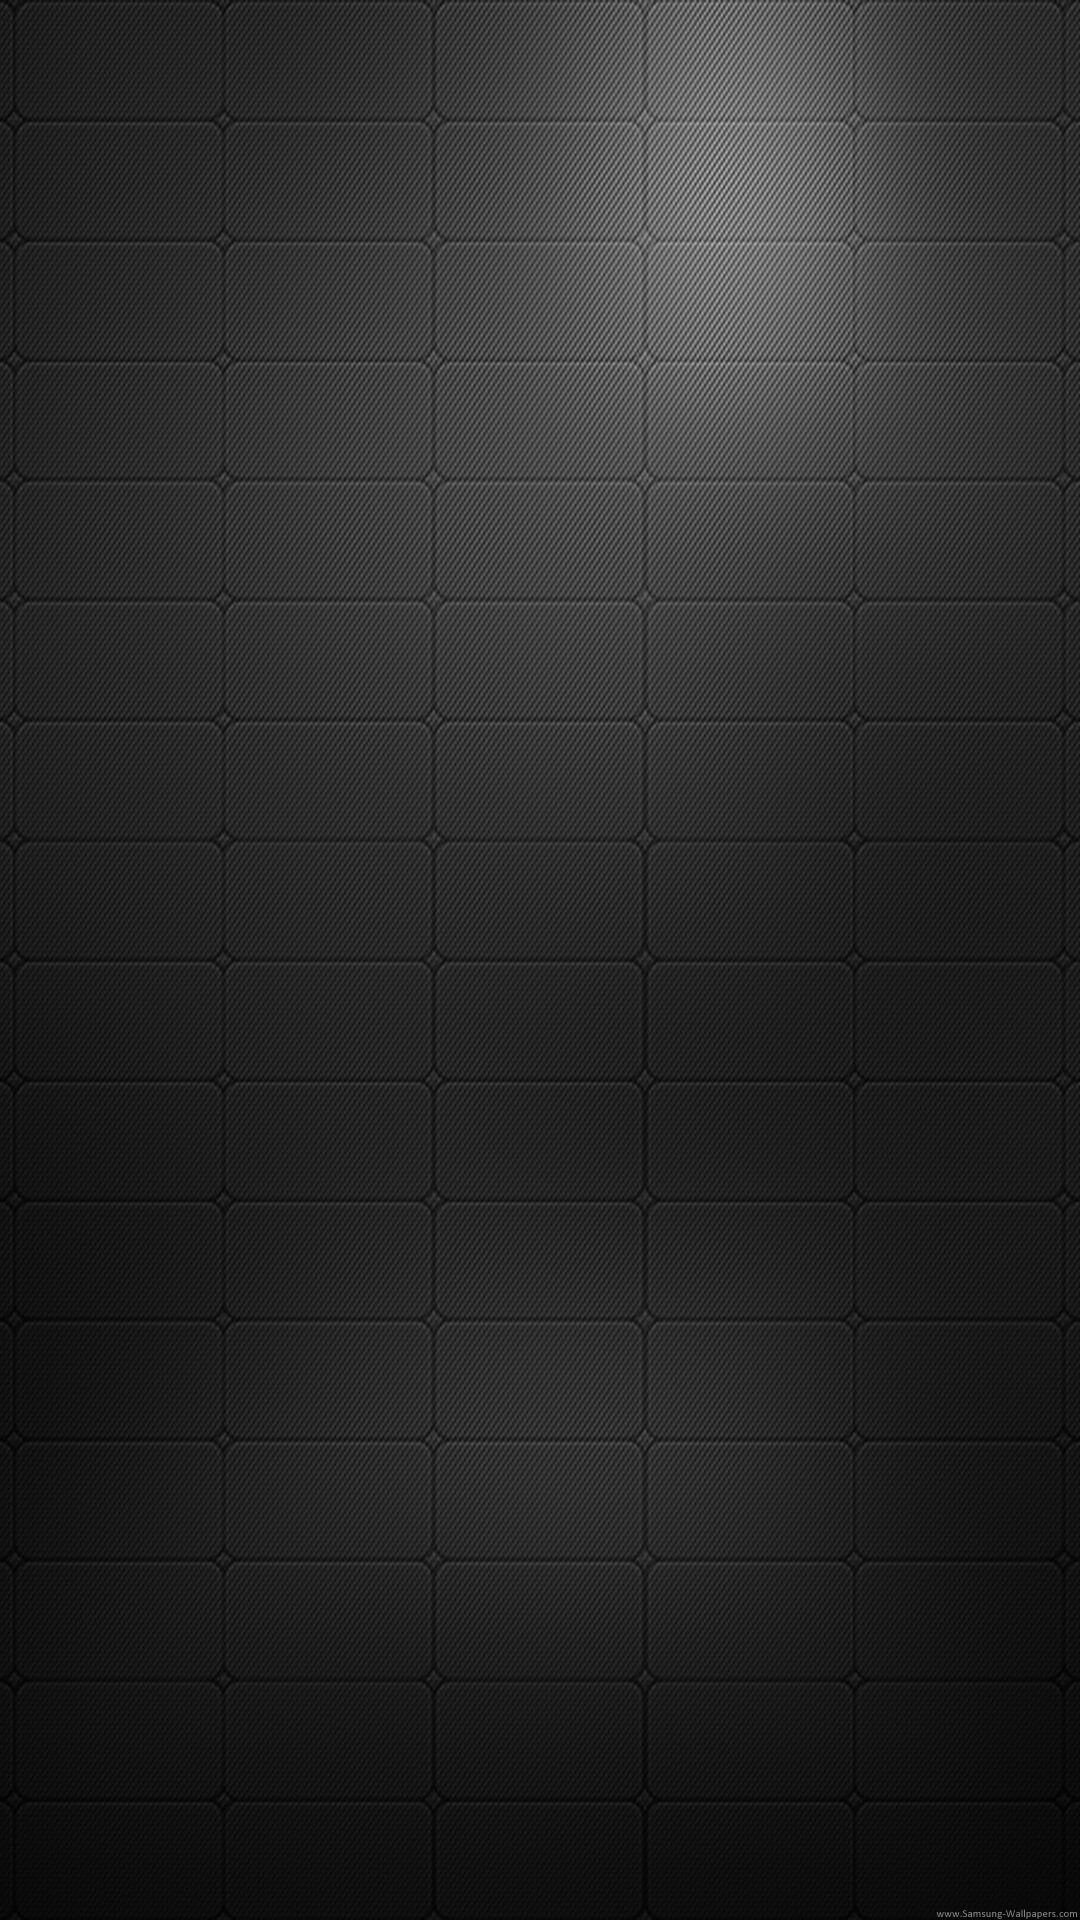 Black Screen Wallpaper For Android Data Src Dark Screen Wallpaper Hd 1080x1920 Download Hd Wallpaper Wallpapertip